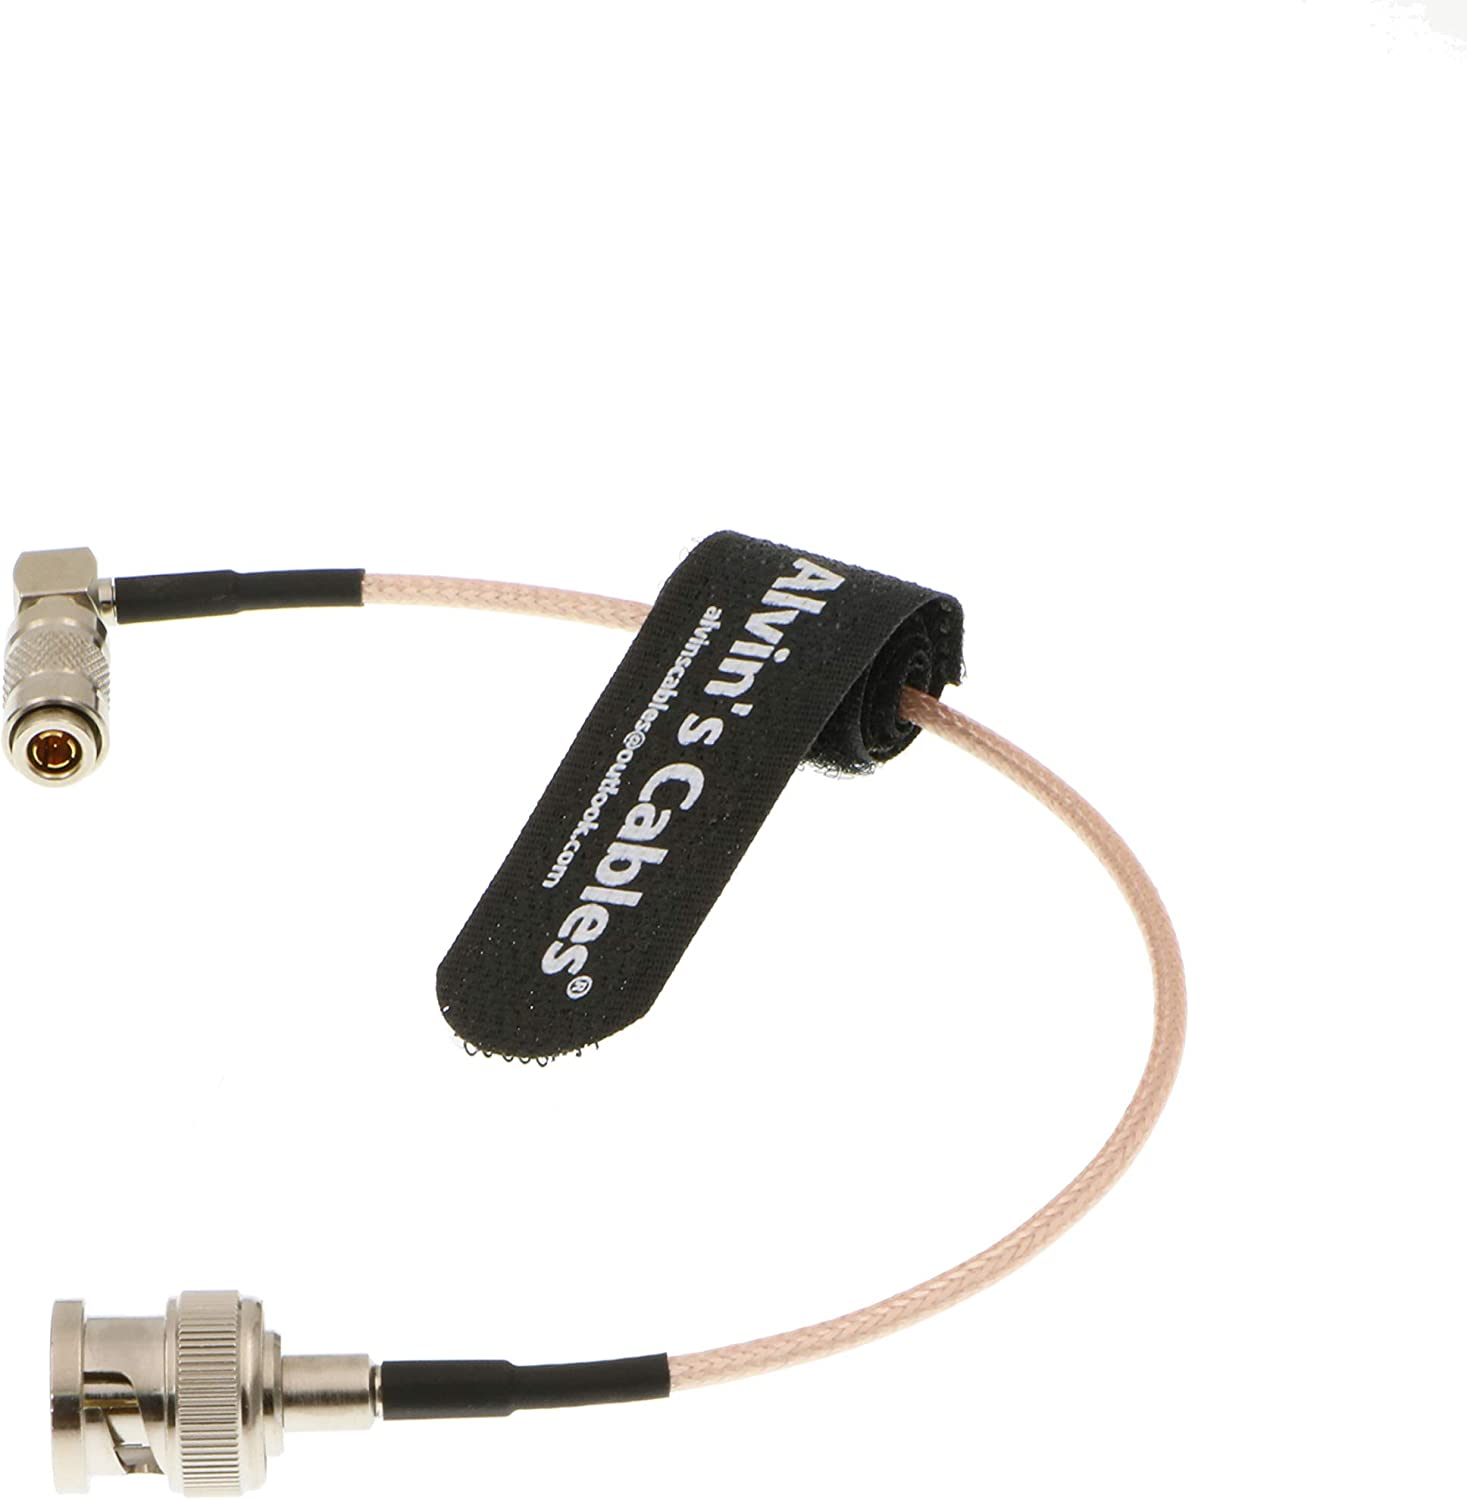 Alvins Cables Blackmagic DIN 1.0//2.3 Right Angle to BNC Male 75ohm RG179 HD SDI Cable 1M